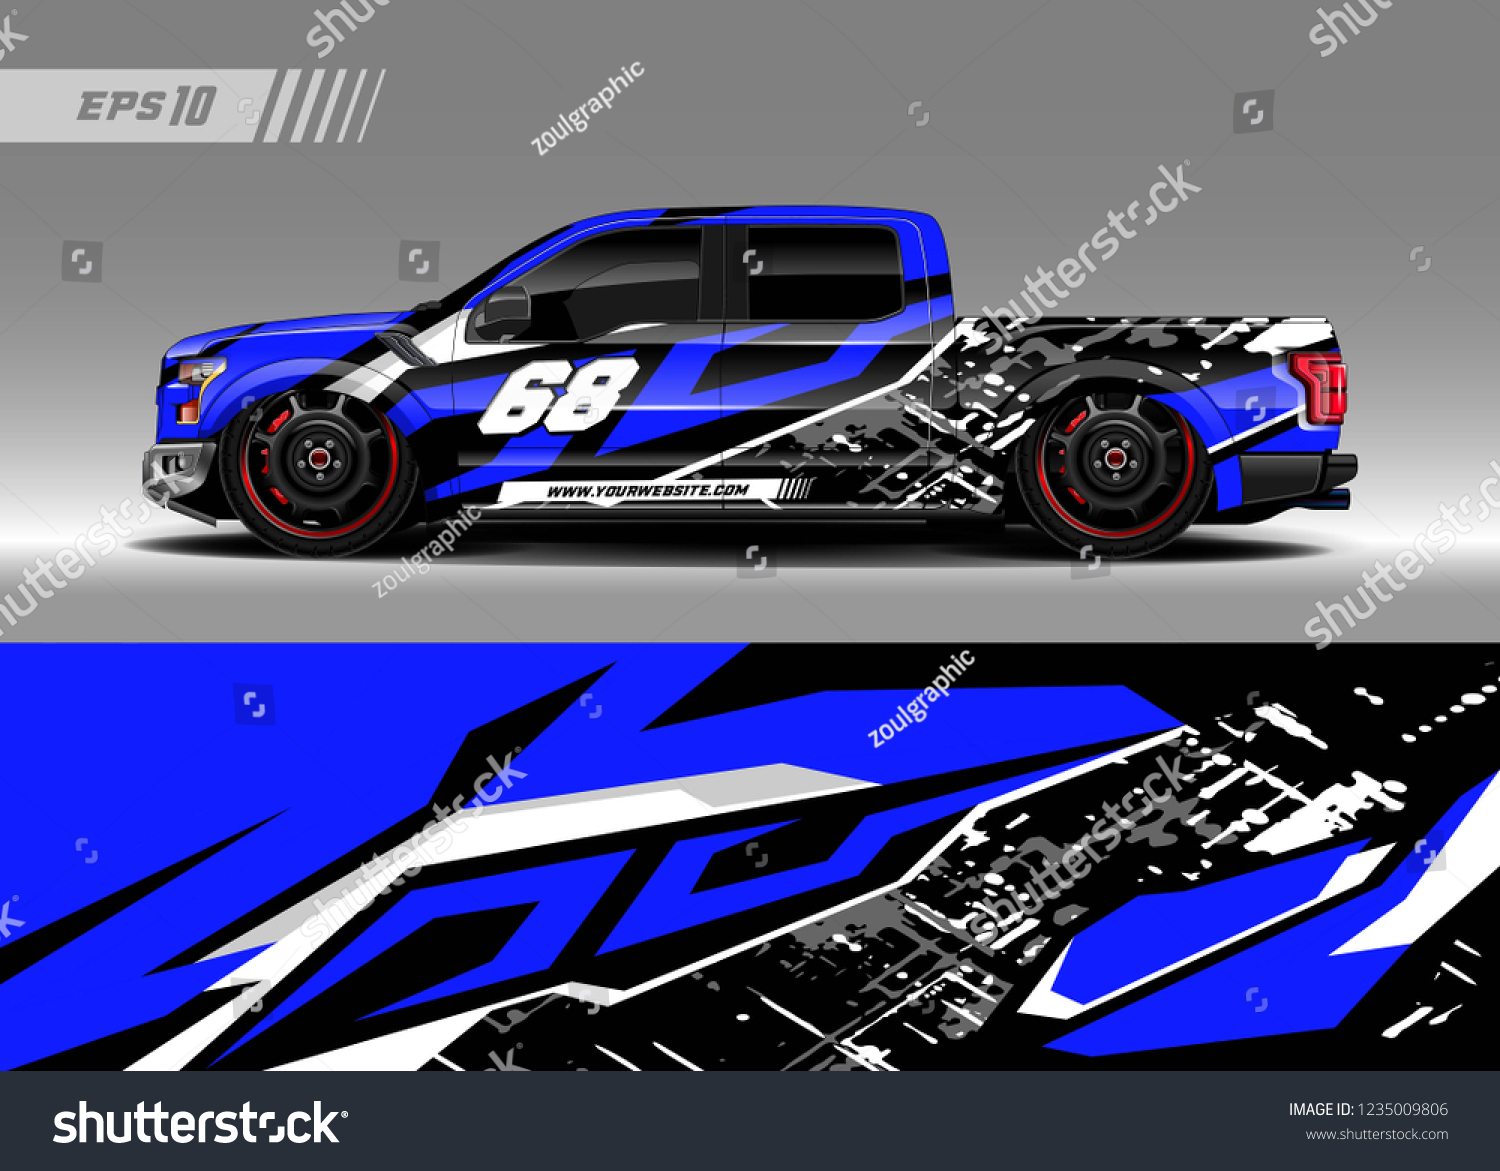 Vehicle graphic livery design vector graphic abstract stripe racing background designs for wrap cargo van